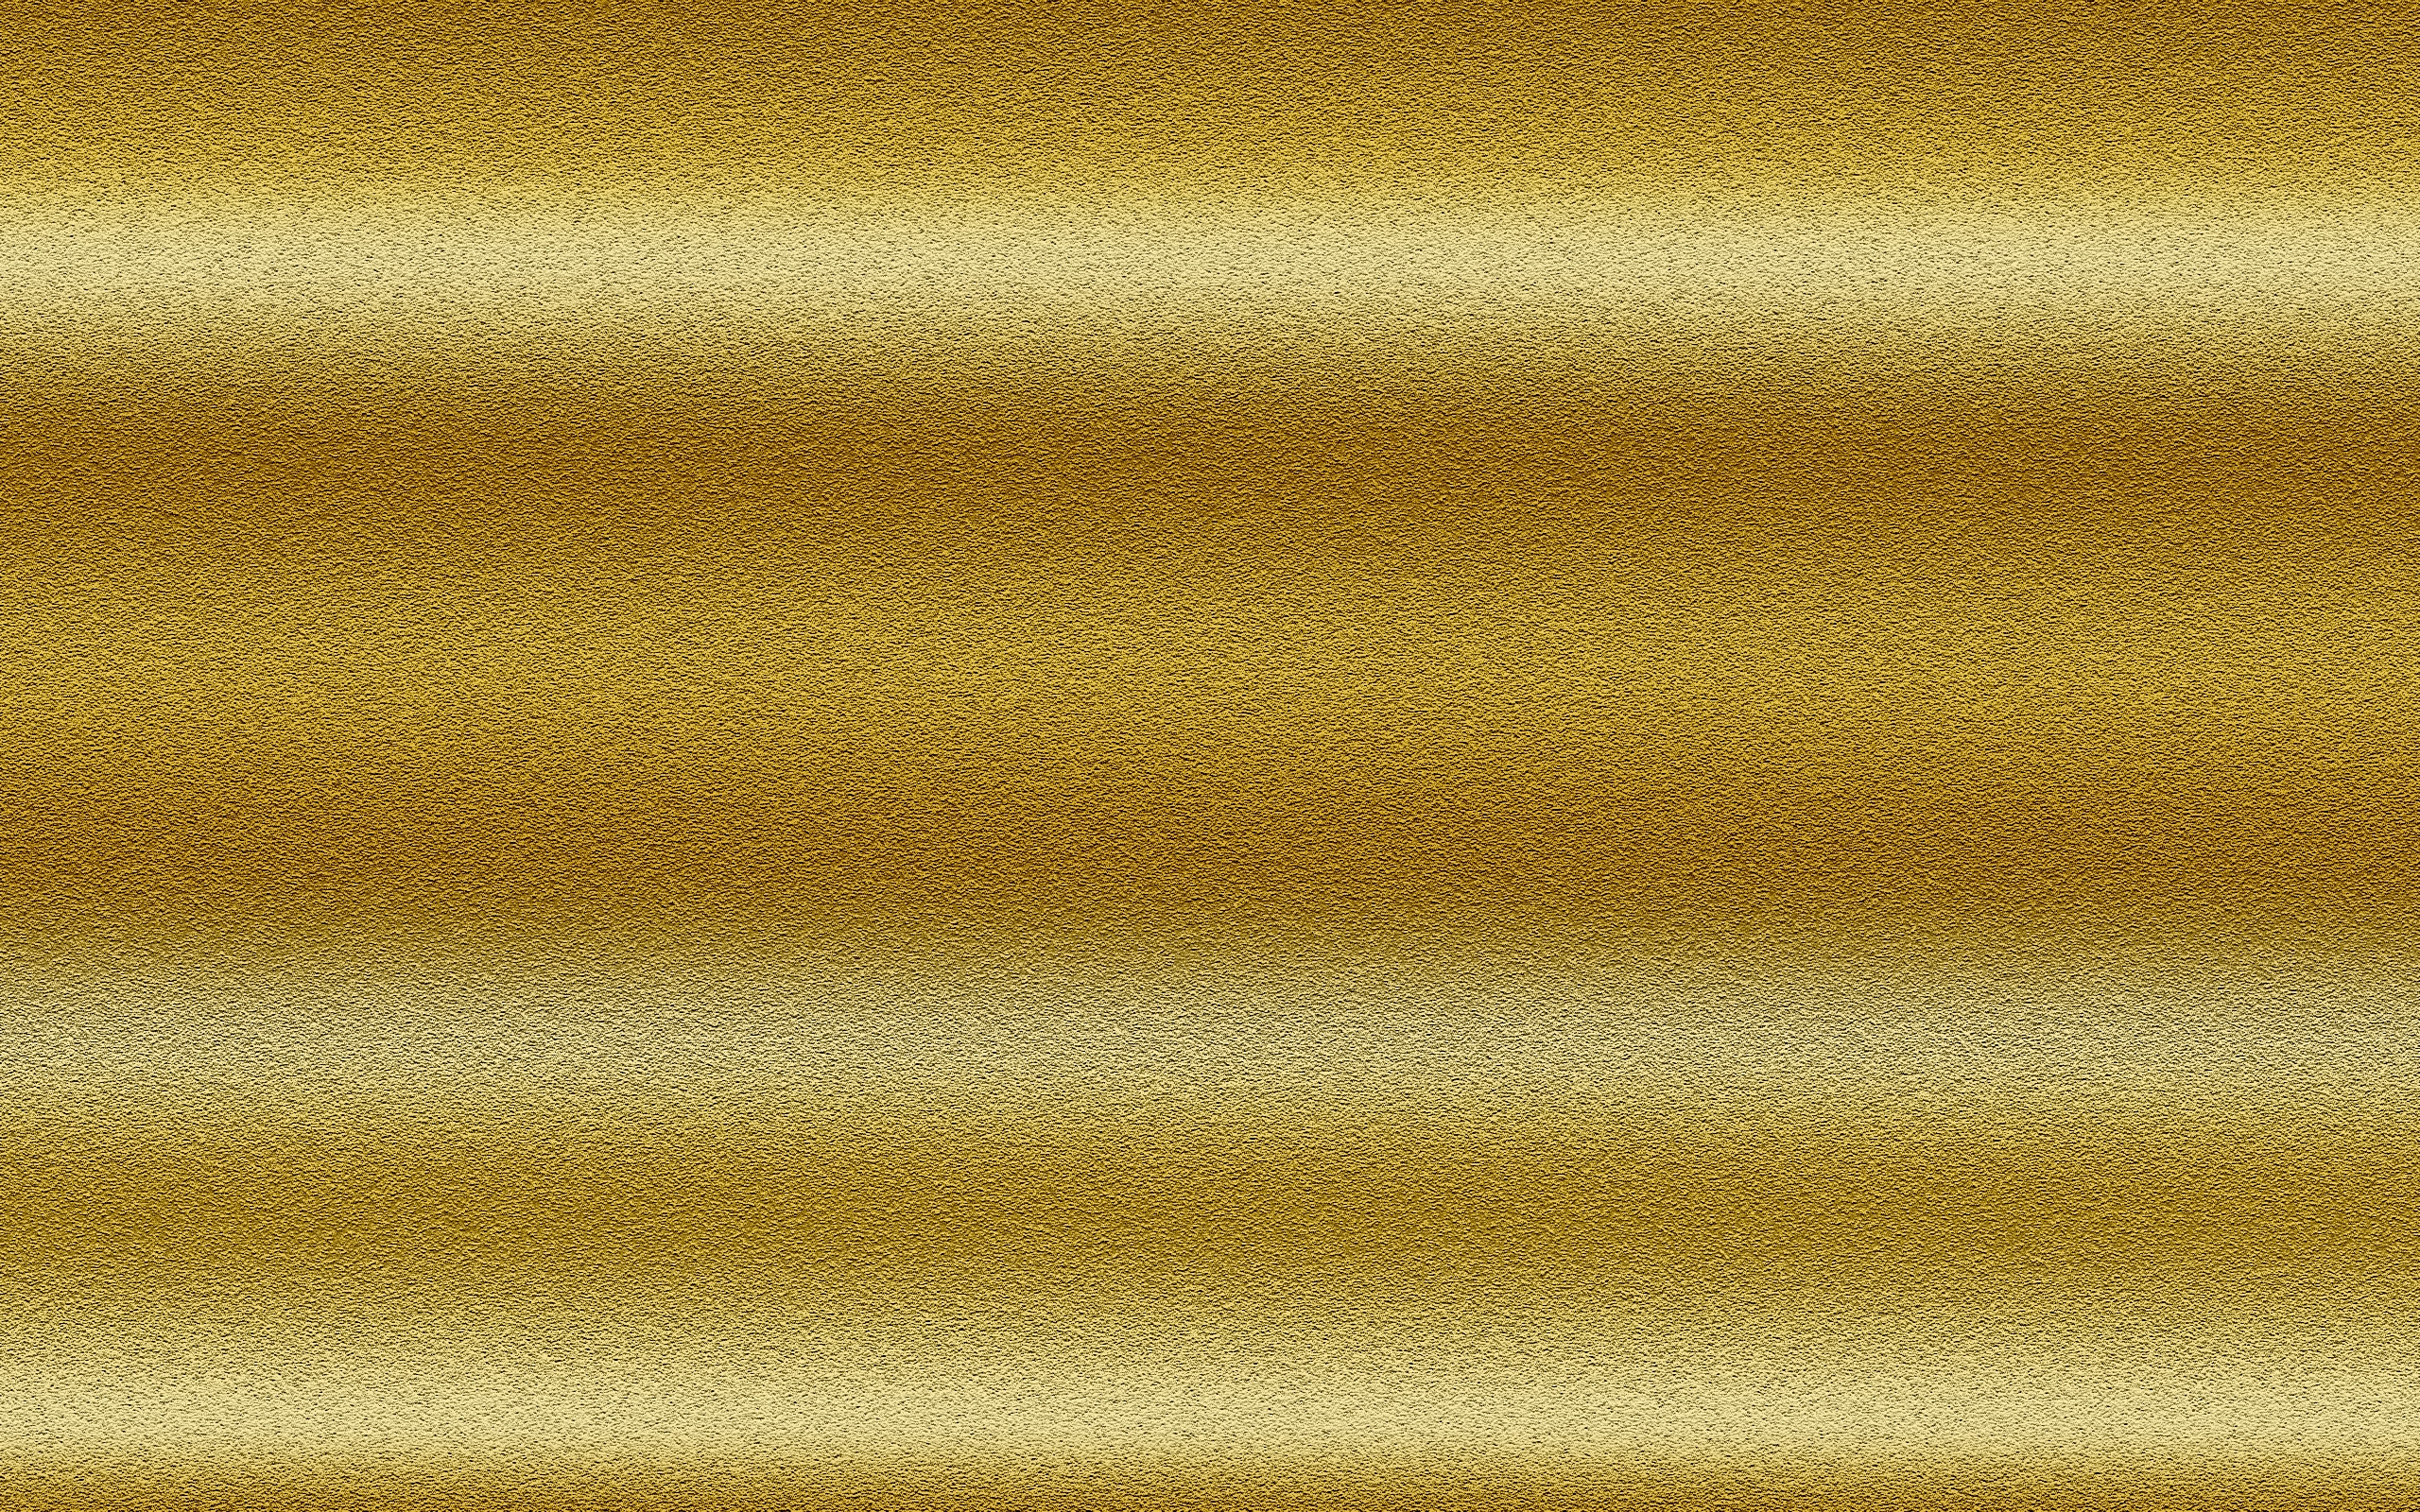 Gold Wallpapers Archives Hdwallsource Com